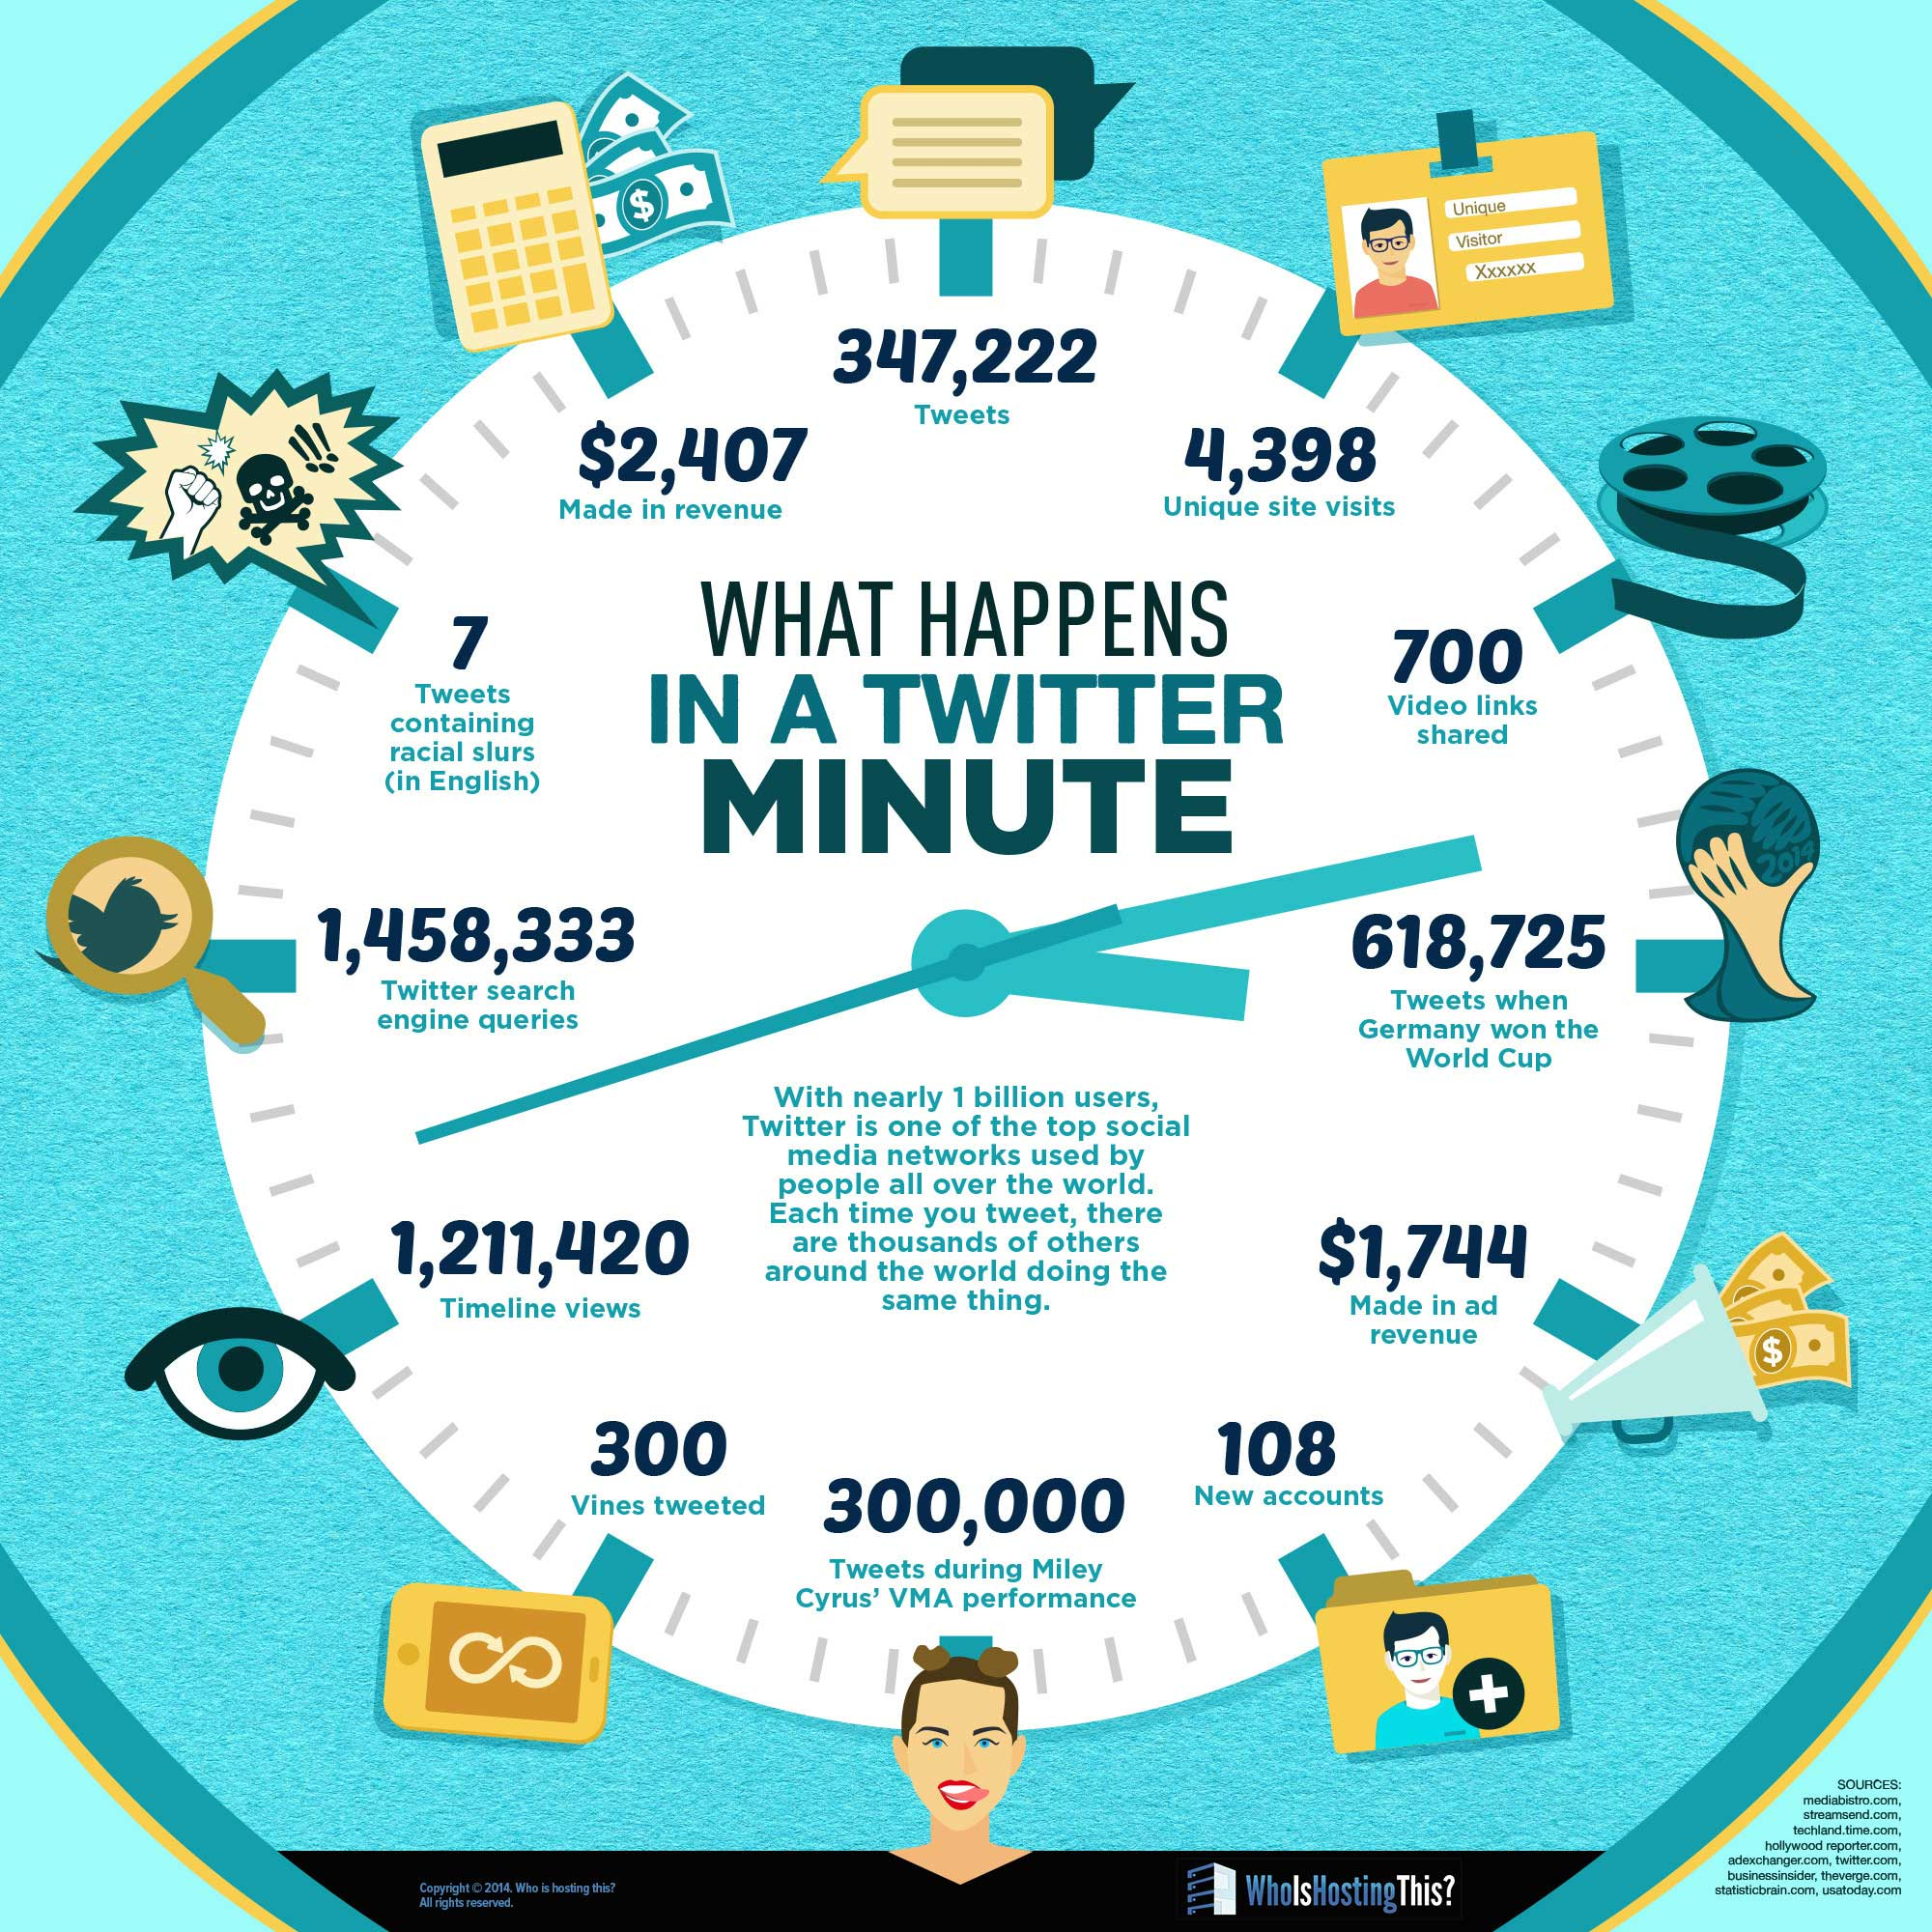 Infographic Twitter in a minute